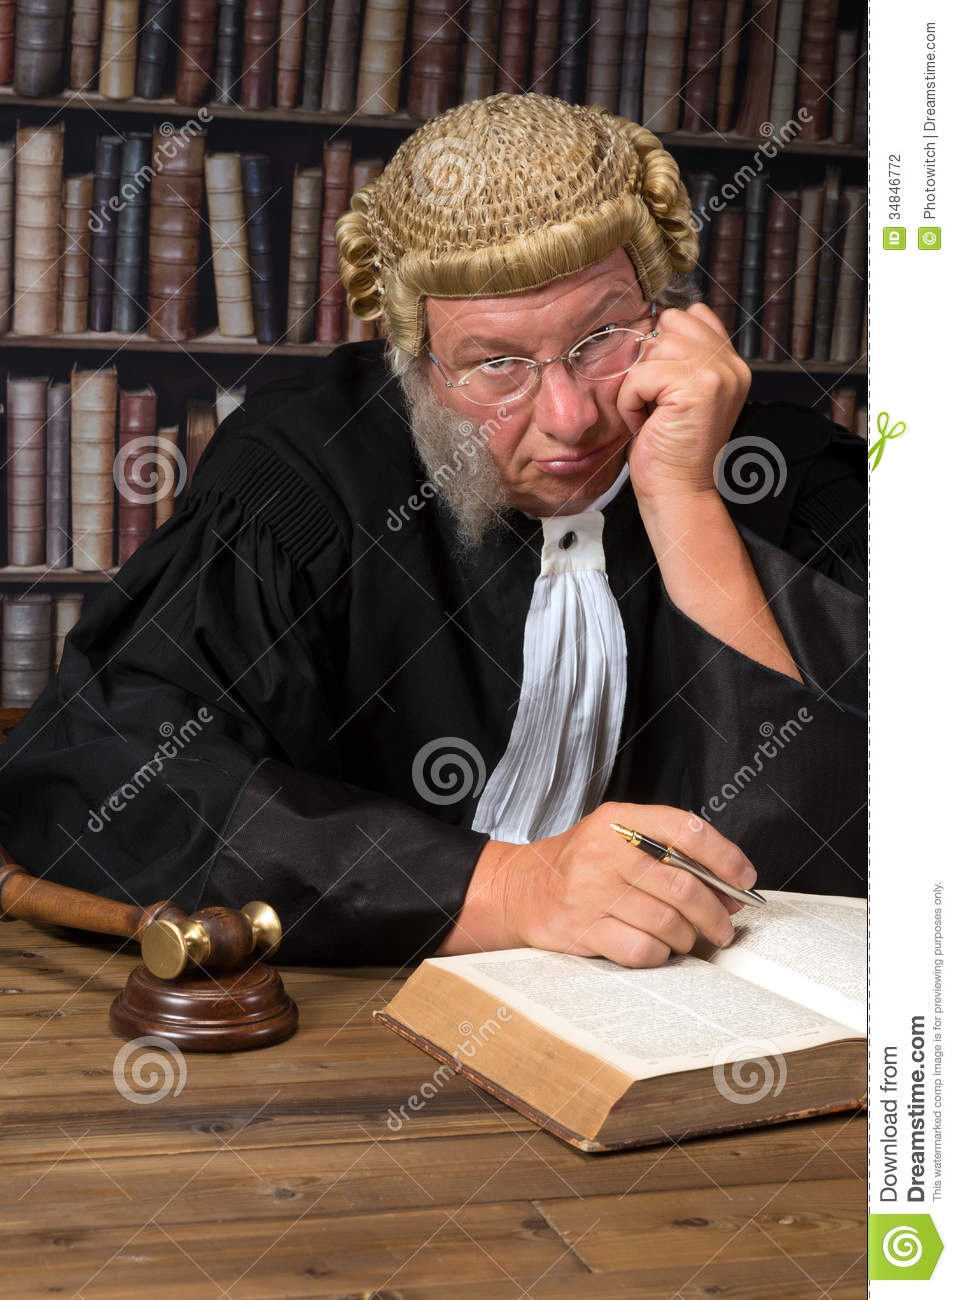 Bored Judge In Court Stock Photography Image 34846772